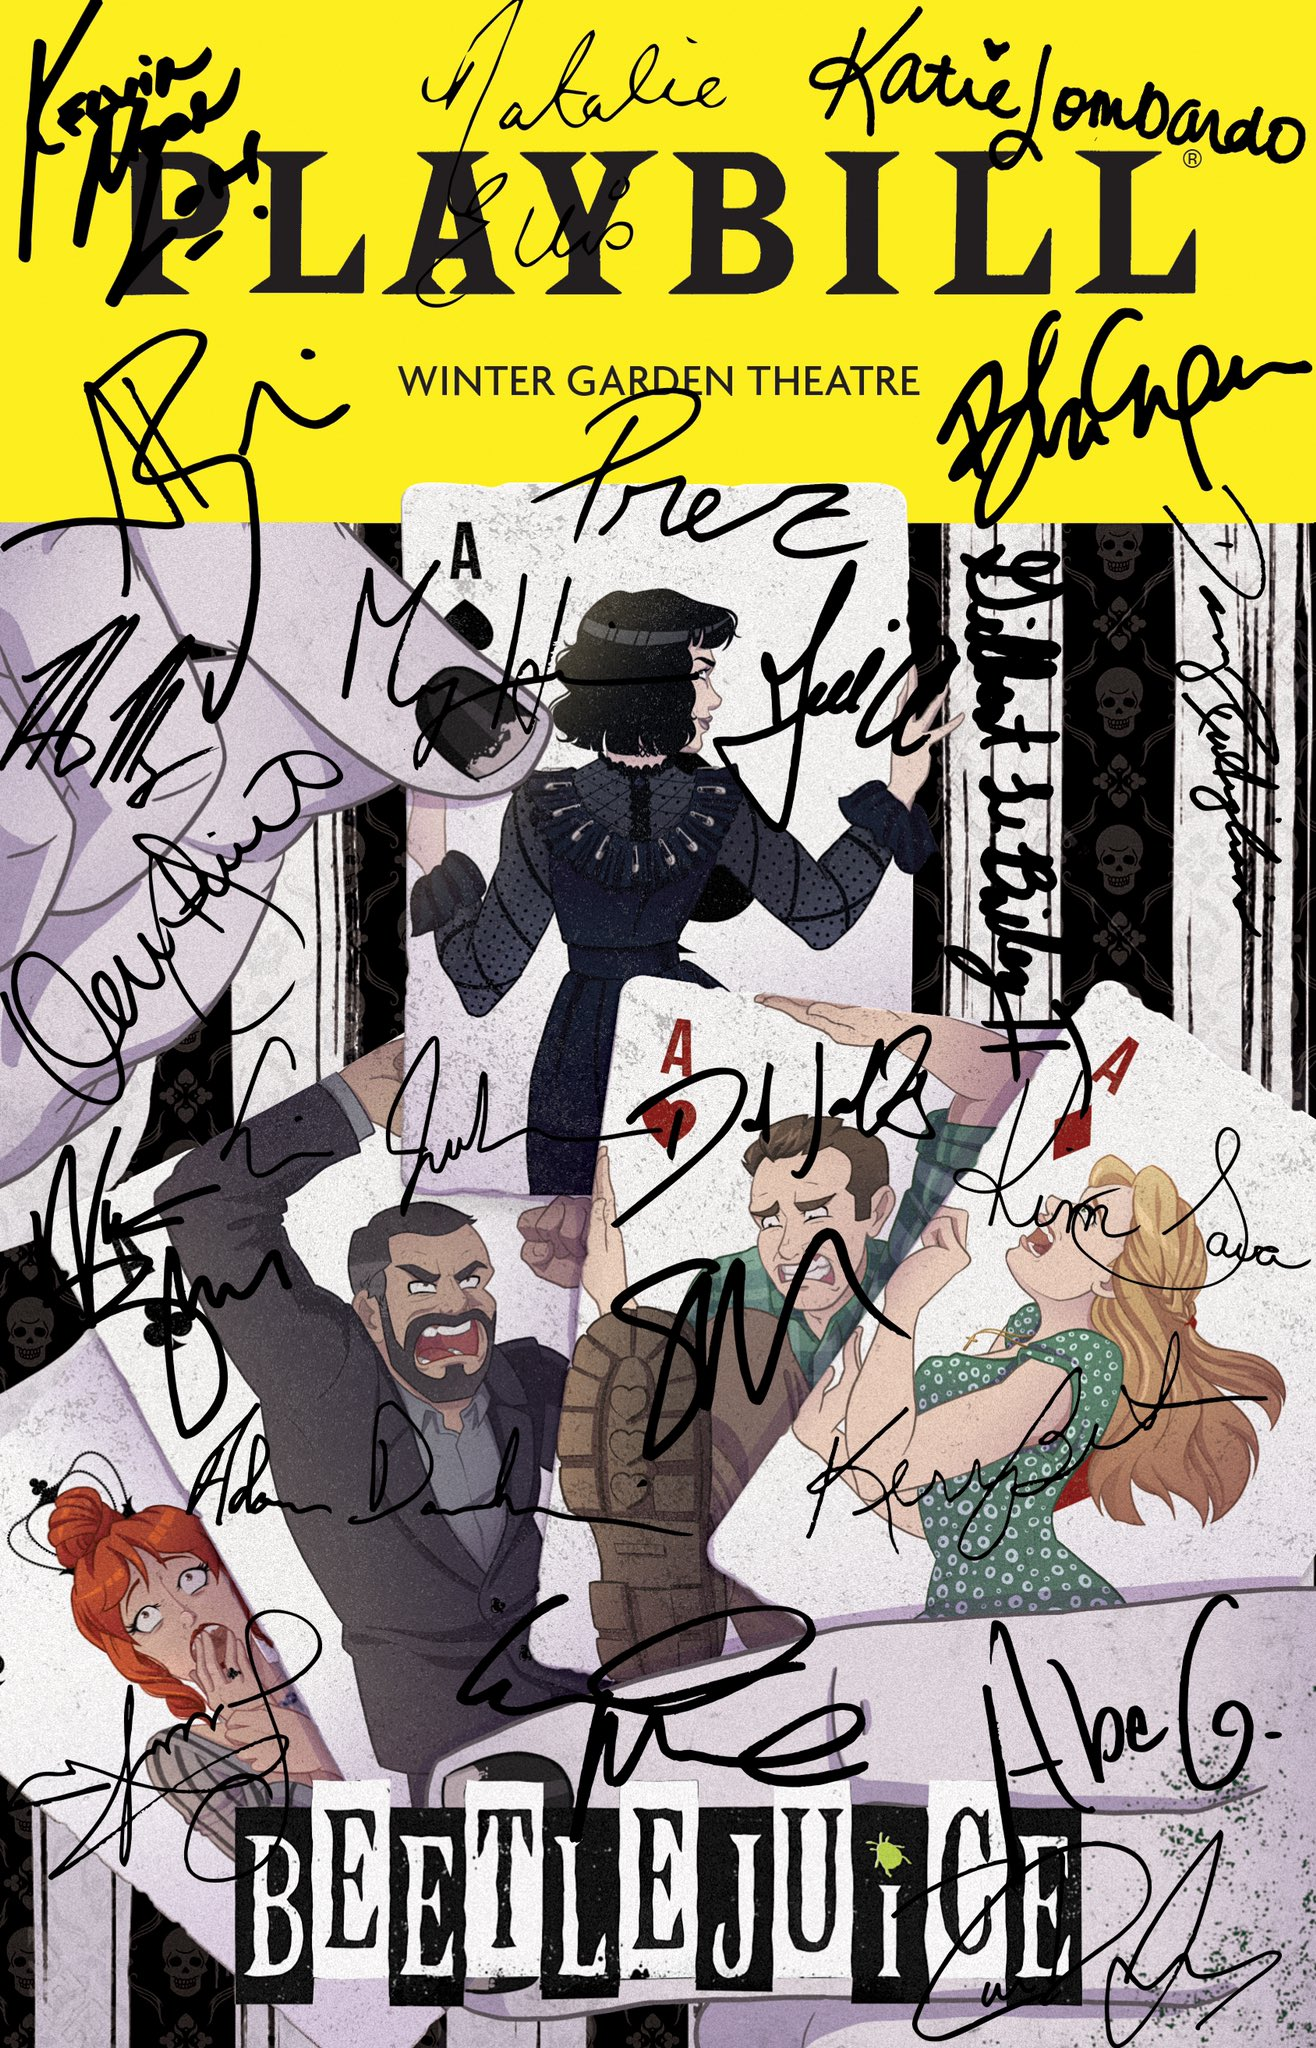 Beetlejuice On Broadway On Twitter A Big Sandworm Sized Thank You To Our Cast For Joining Our Virtualstagedoor And Signing This Beetlejuicebway Playbill And Thank You To The Winner Of Our Playbill Fan